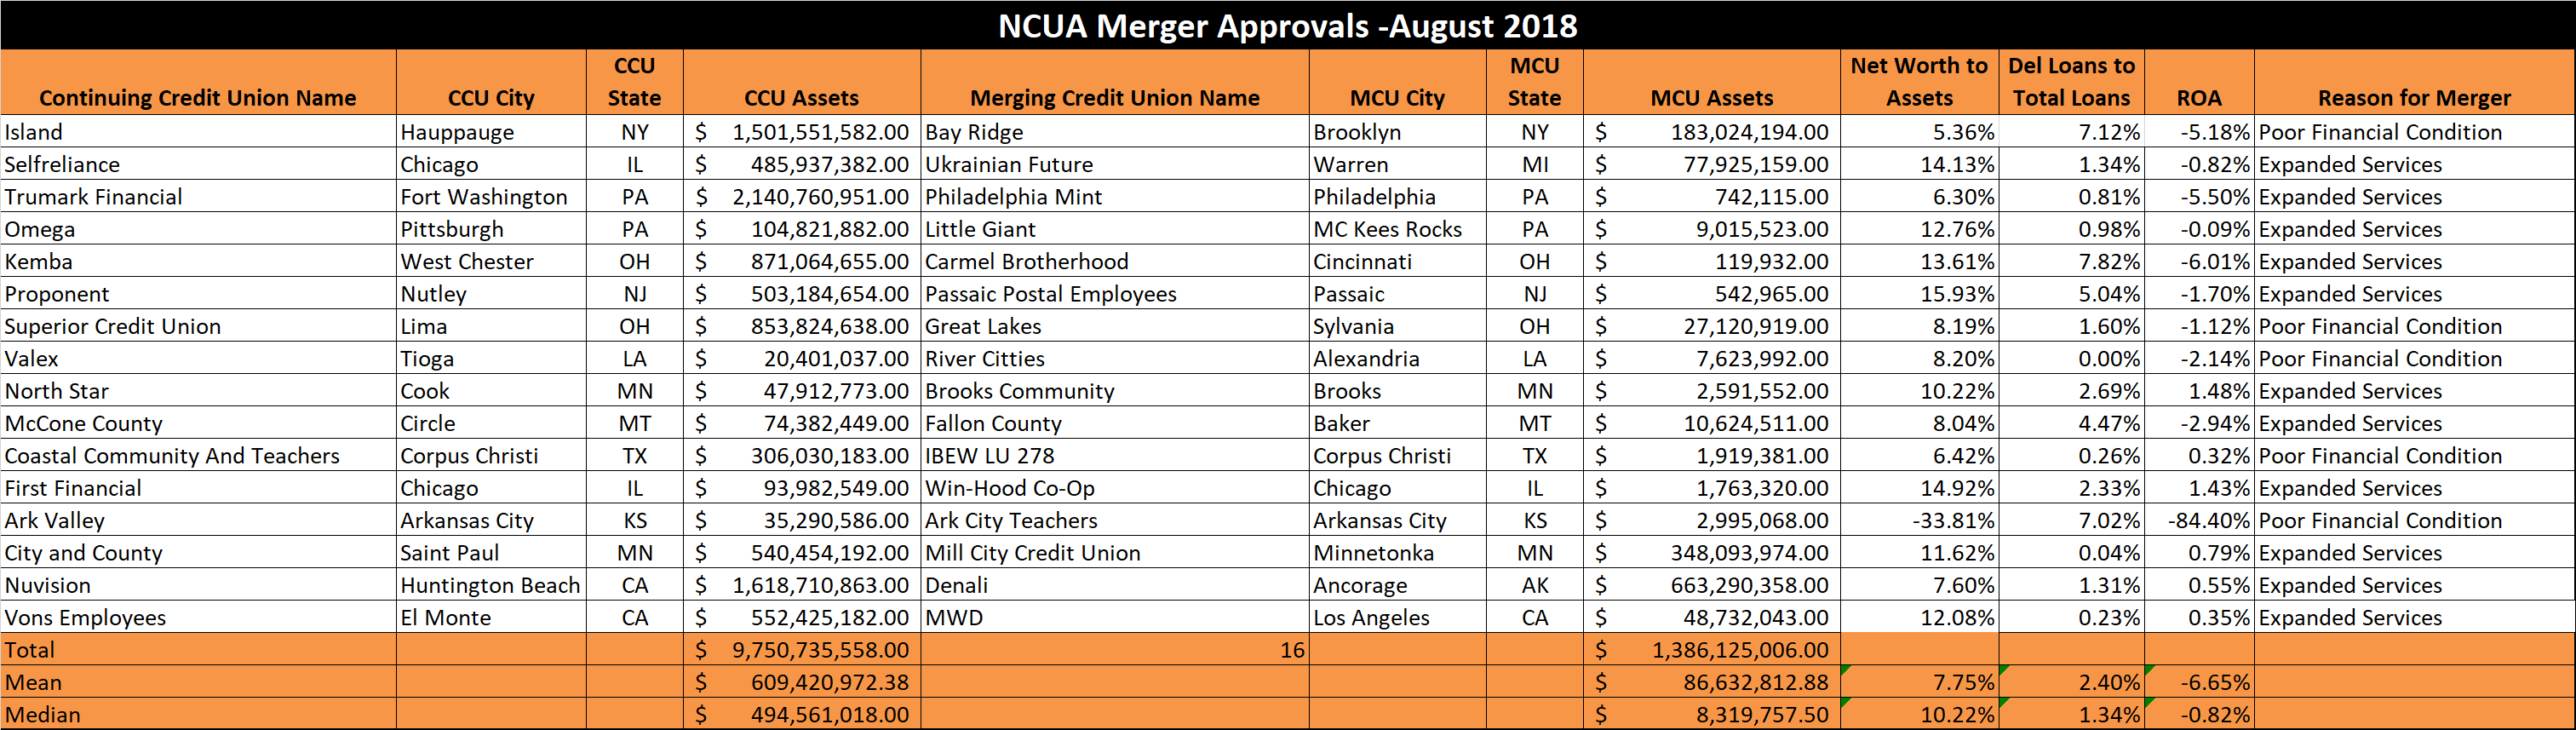 Credit Union Merger Approvals - August 2018